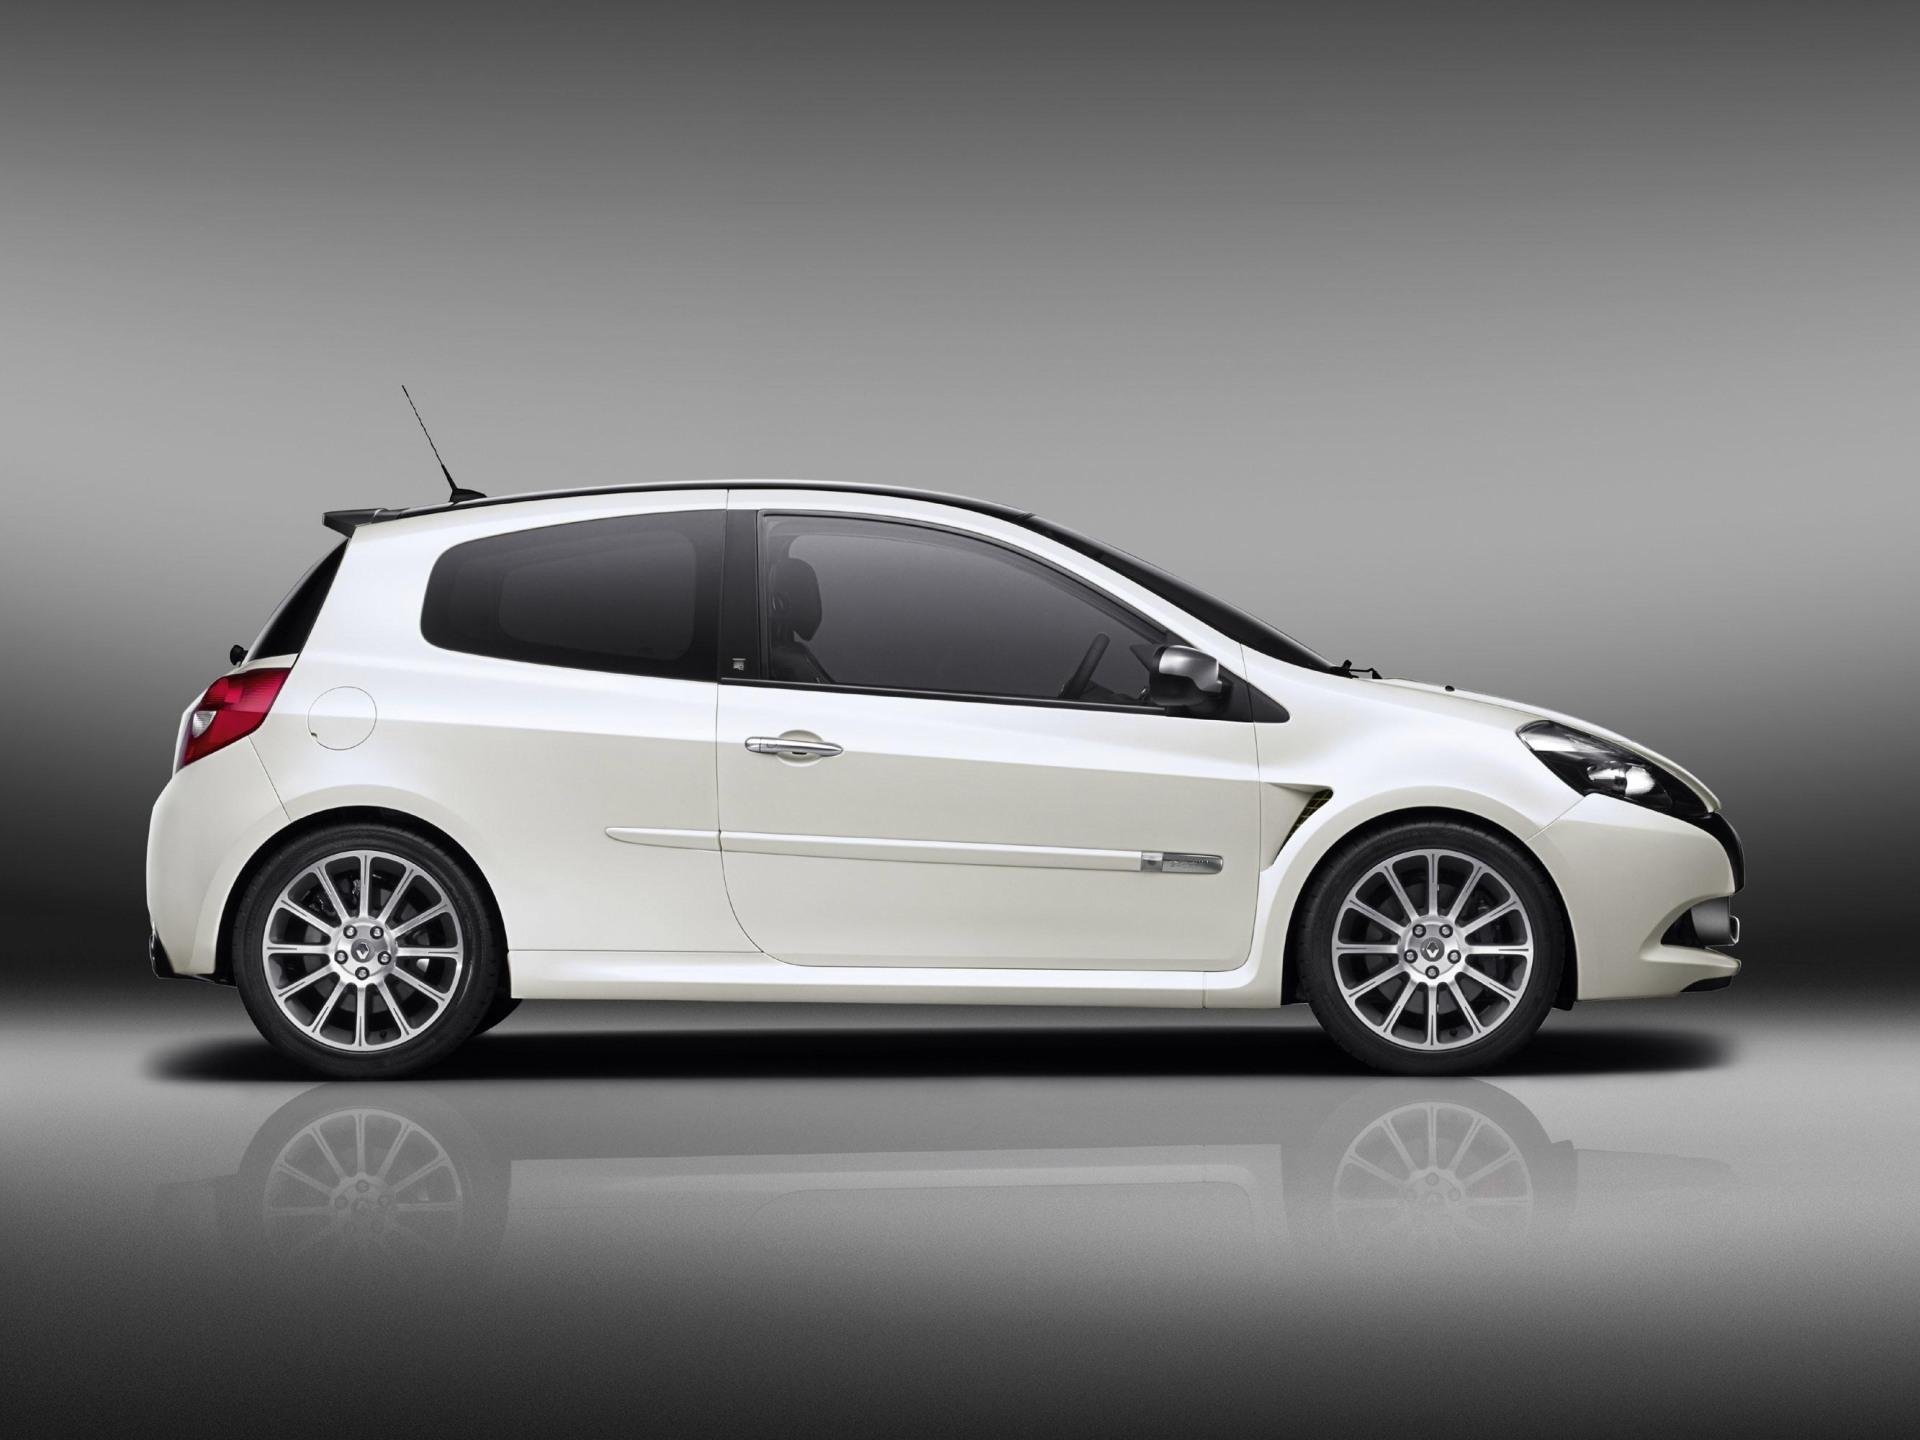 2010 Renault Clio 20th Anniversary Edition News And